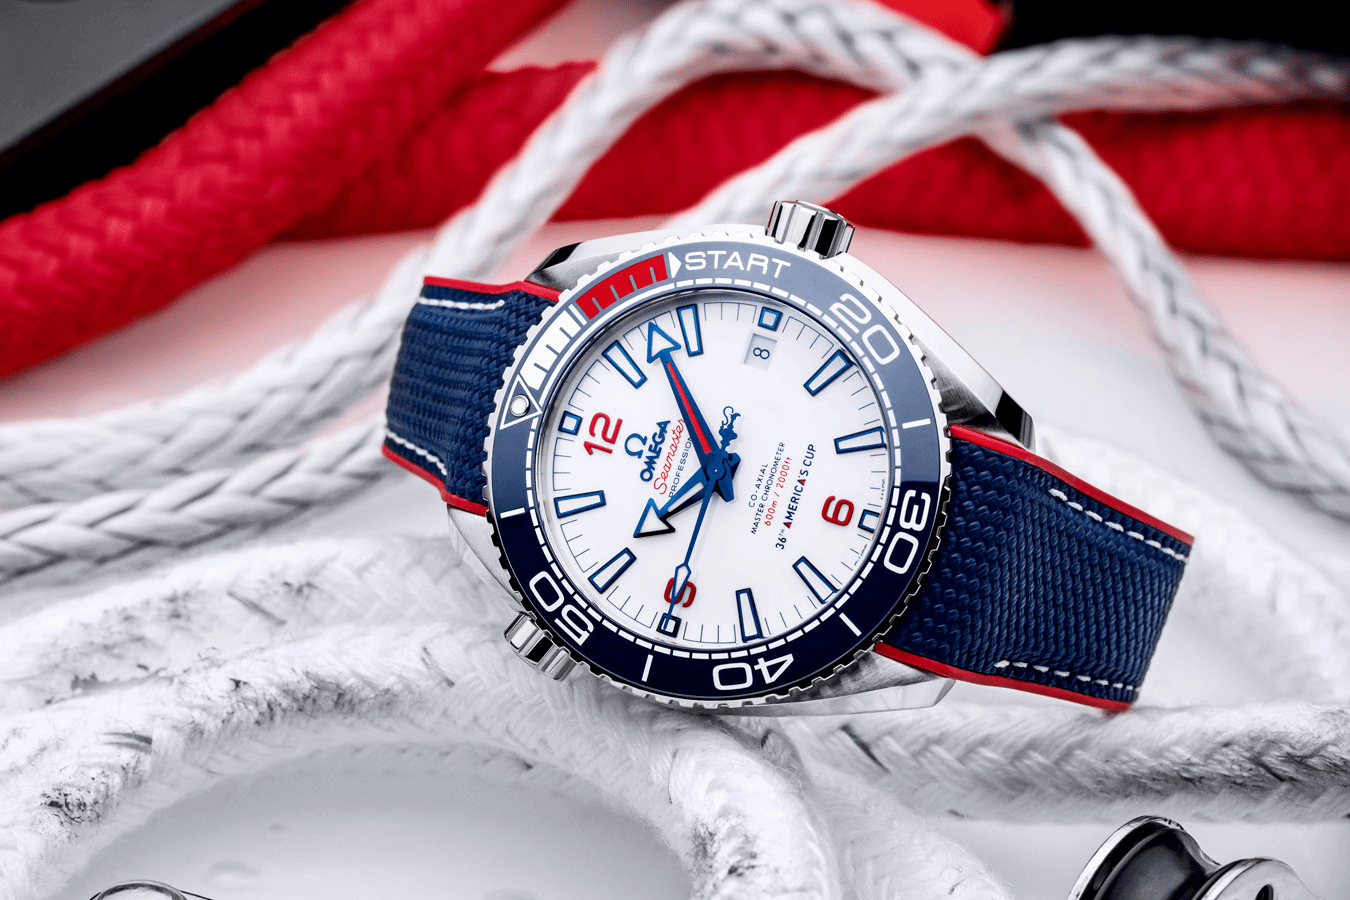 OMEGA SEAMASTER PLANET OCEAN PHIÊN BẢN LIMITED AMERICA'S CUP 36TH